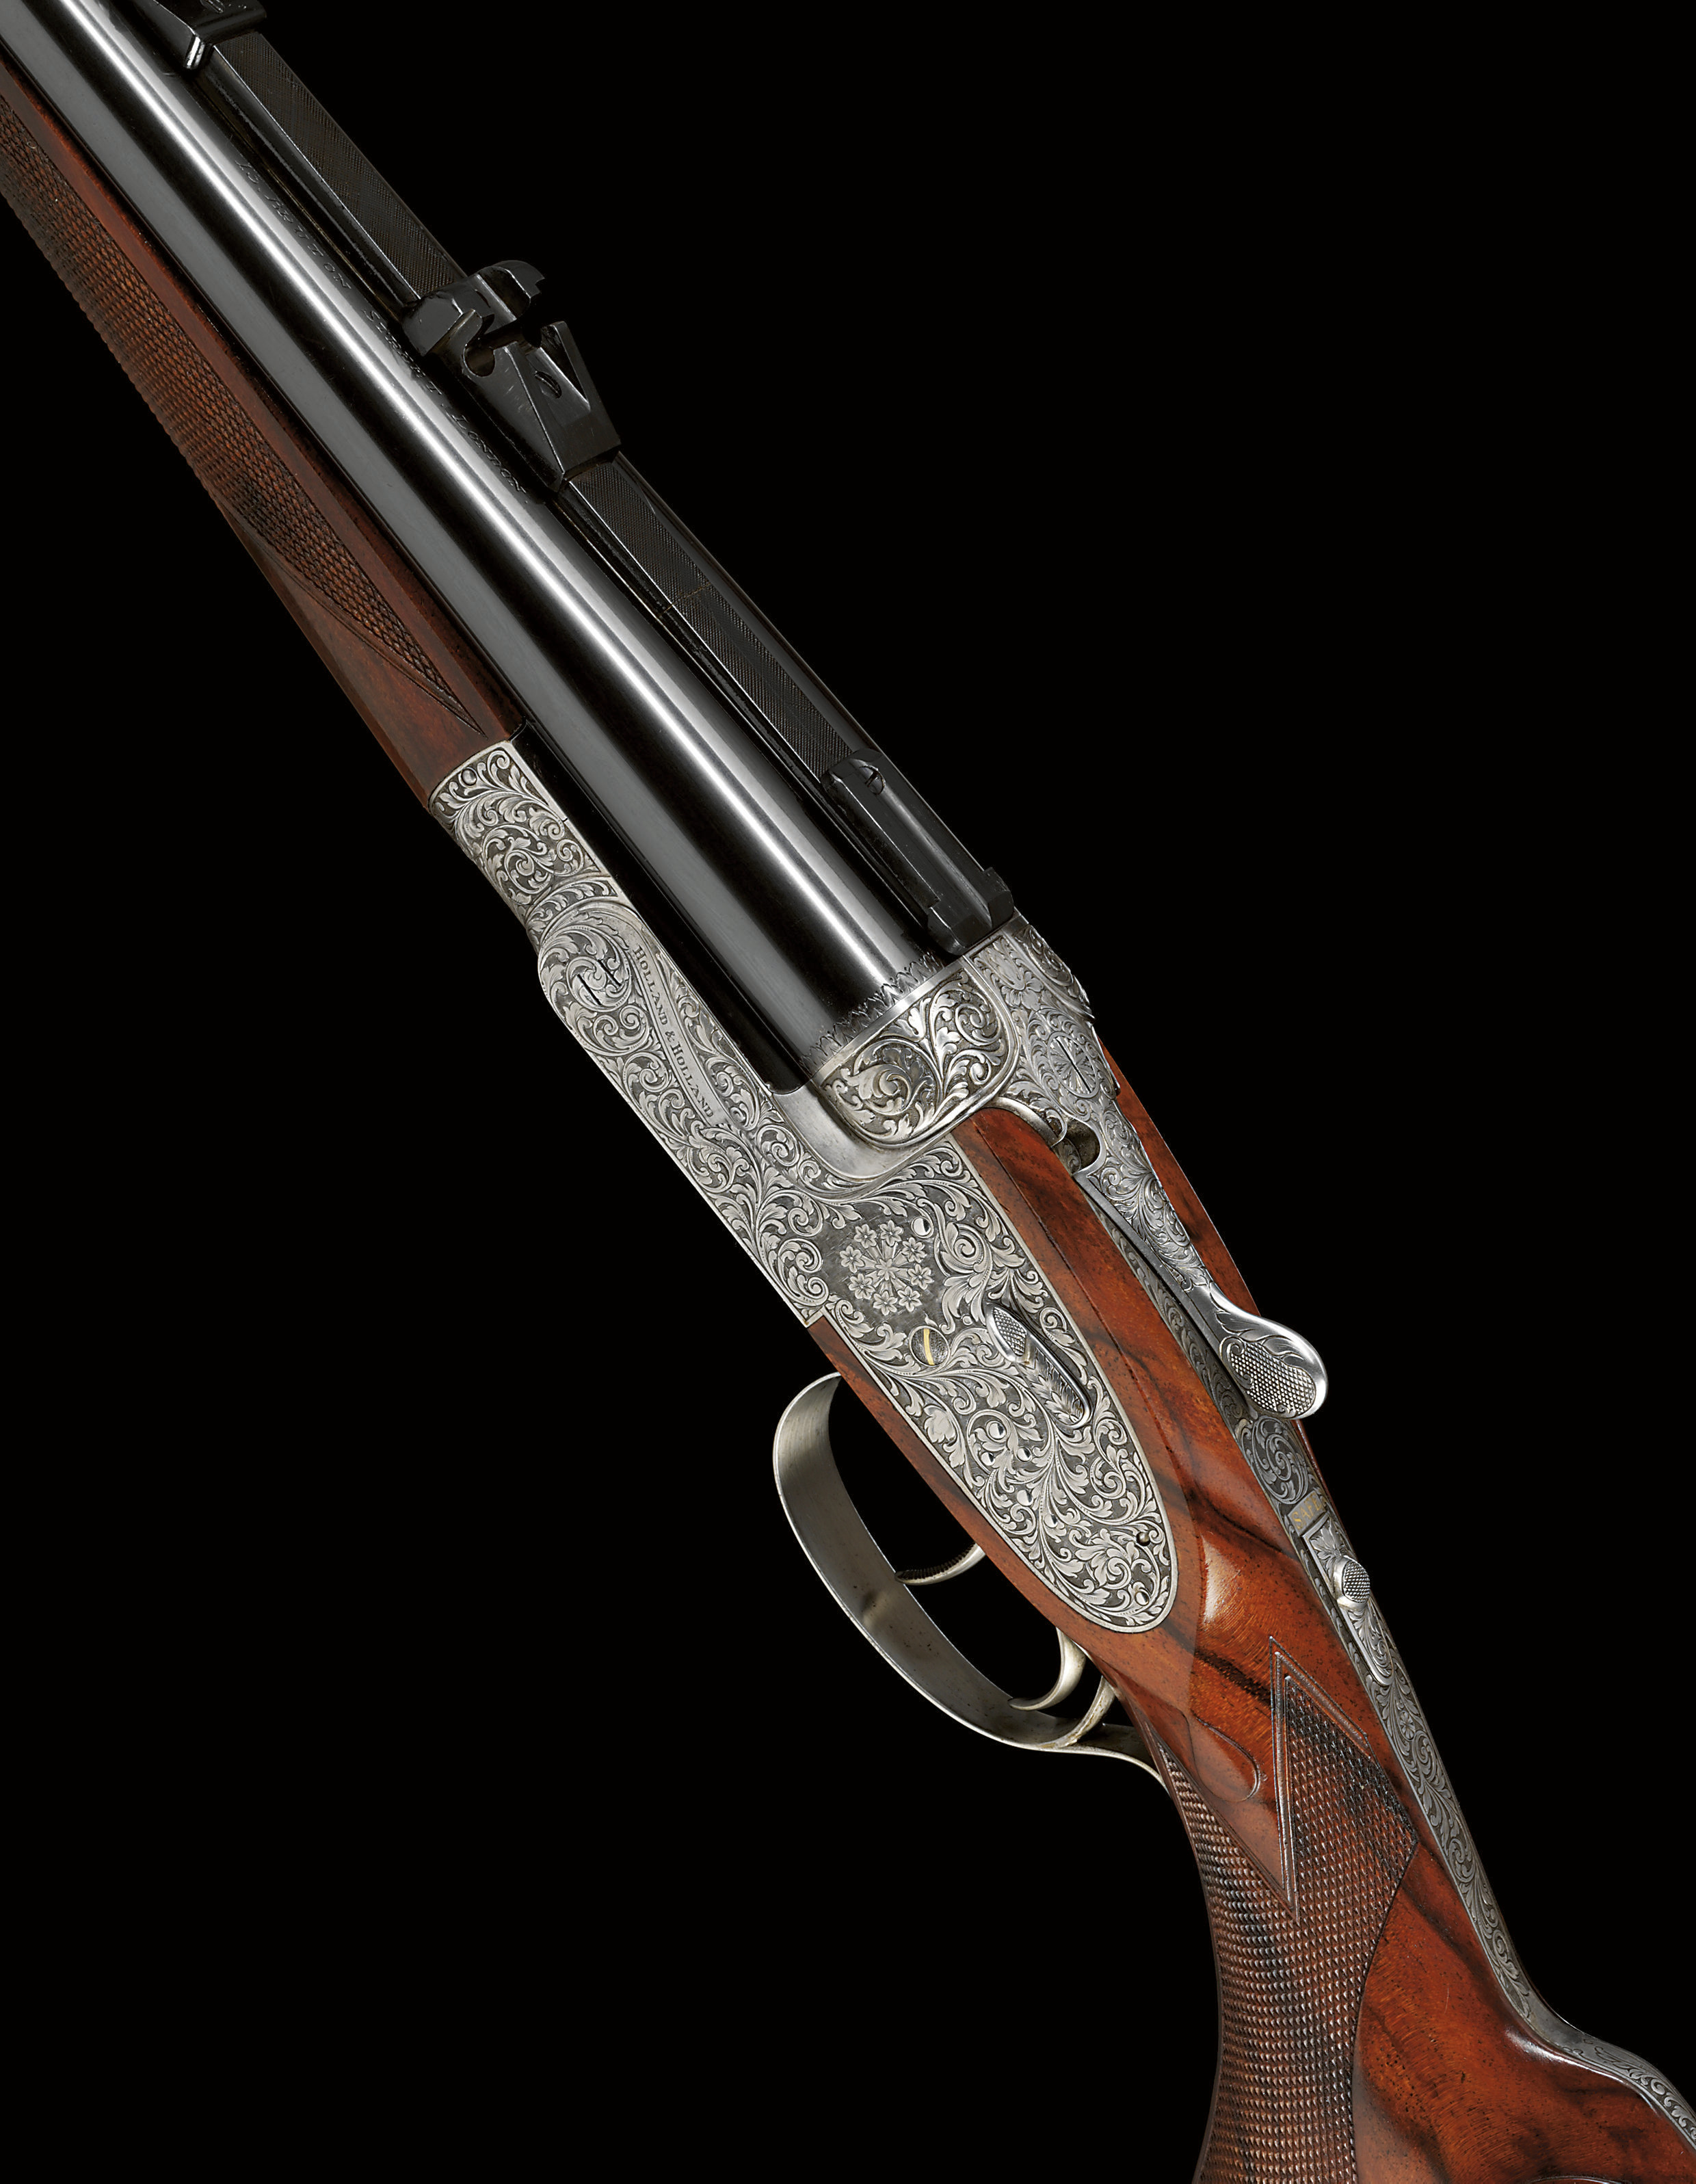 AN EXCEPTIONALLY FINE .375 MAGNUM RIMLESS KEN HUNT ENGRAVED 'MODELE DE LUXE' DOUBLE-BARRELLED SIDELOCK EJECTOR RIFLE BY HOLLAND & HOLLAND, NO. 35448